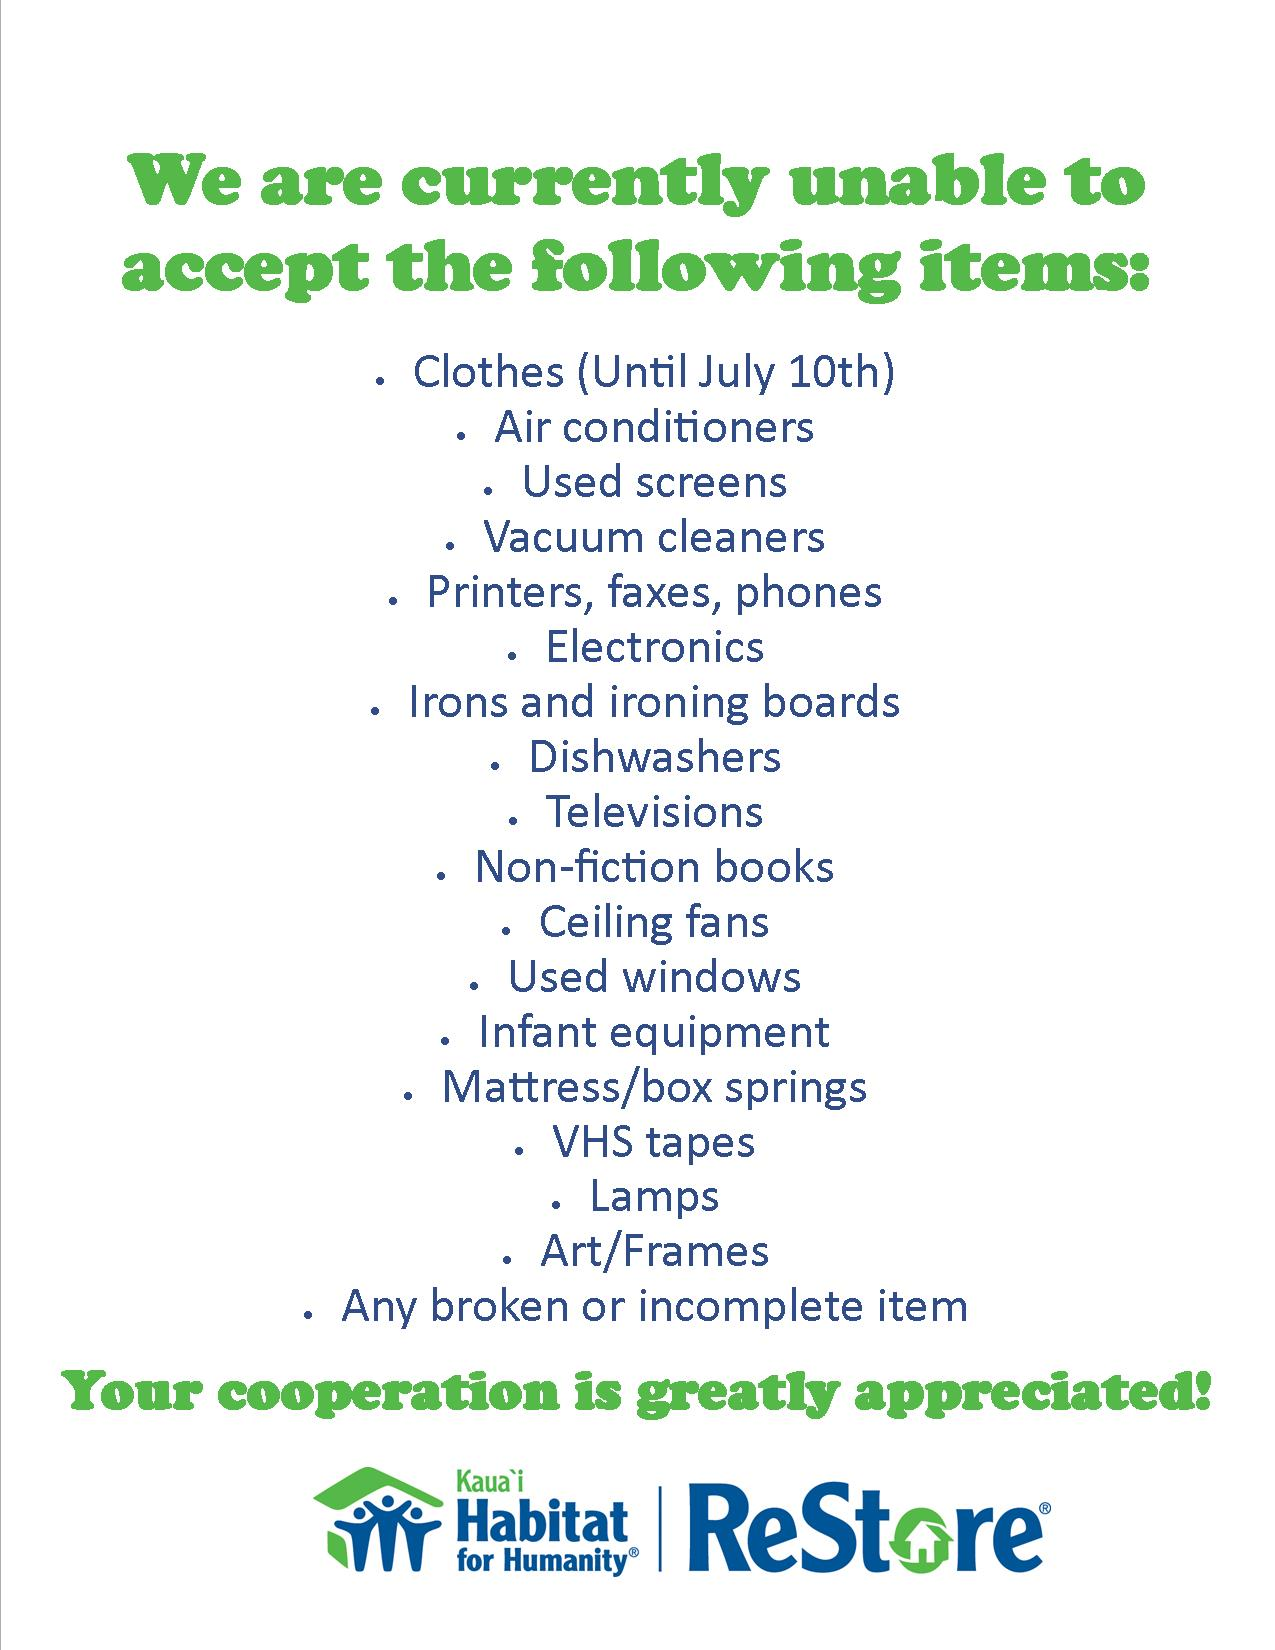 We are unable to accept the following items 063015